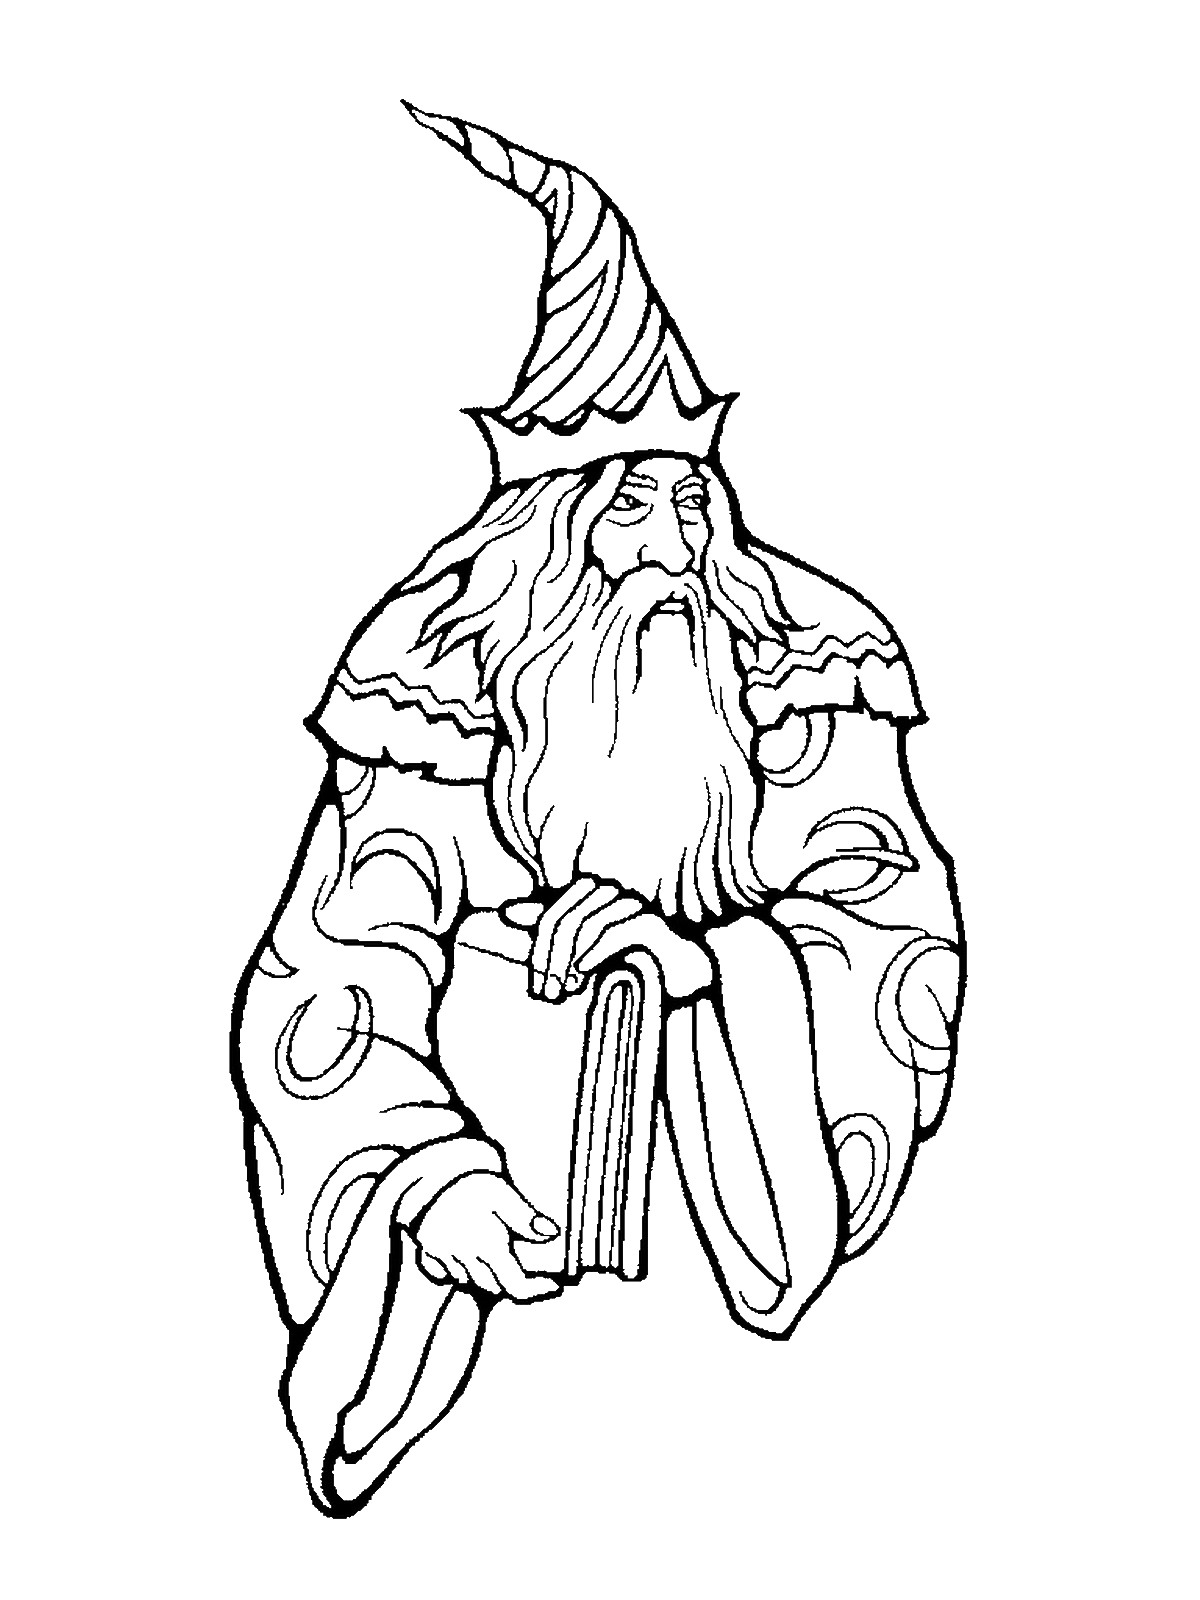 wizard of oz coloring pages to print wizard of oz coloring pages wizard of oz coloring 5 free coloring print oz to pages of wizard